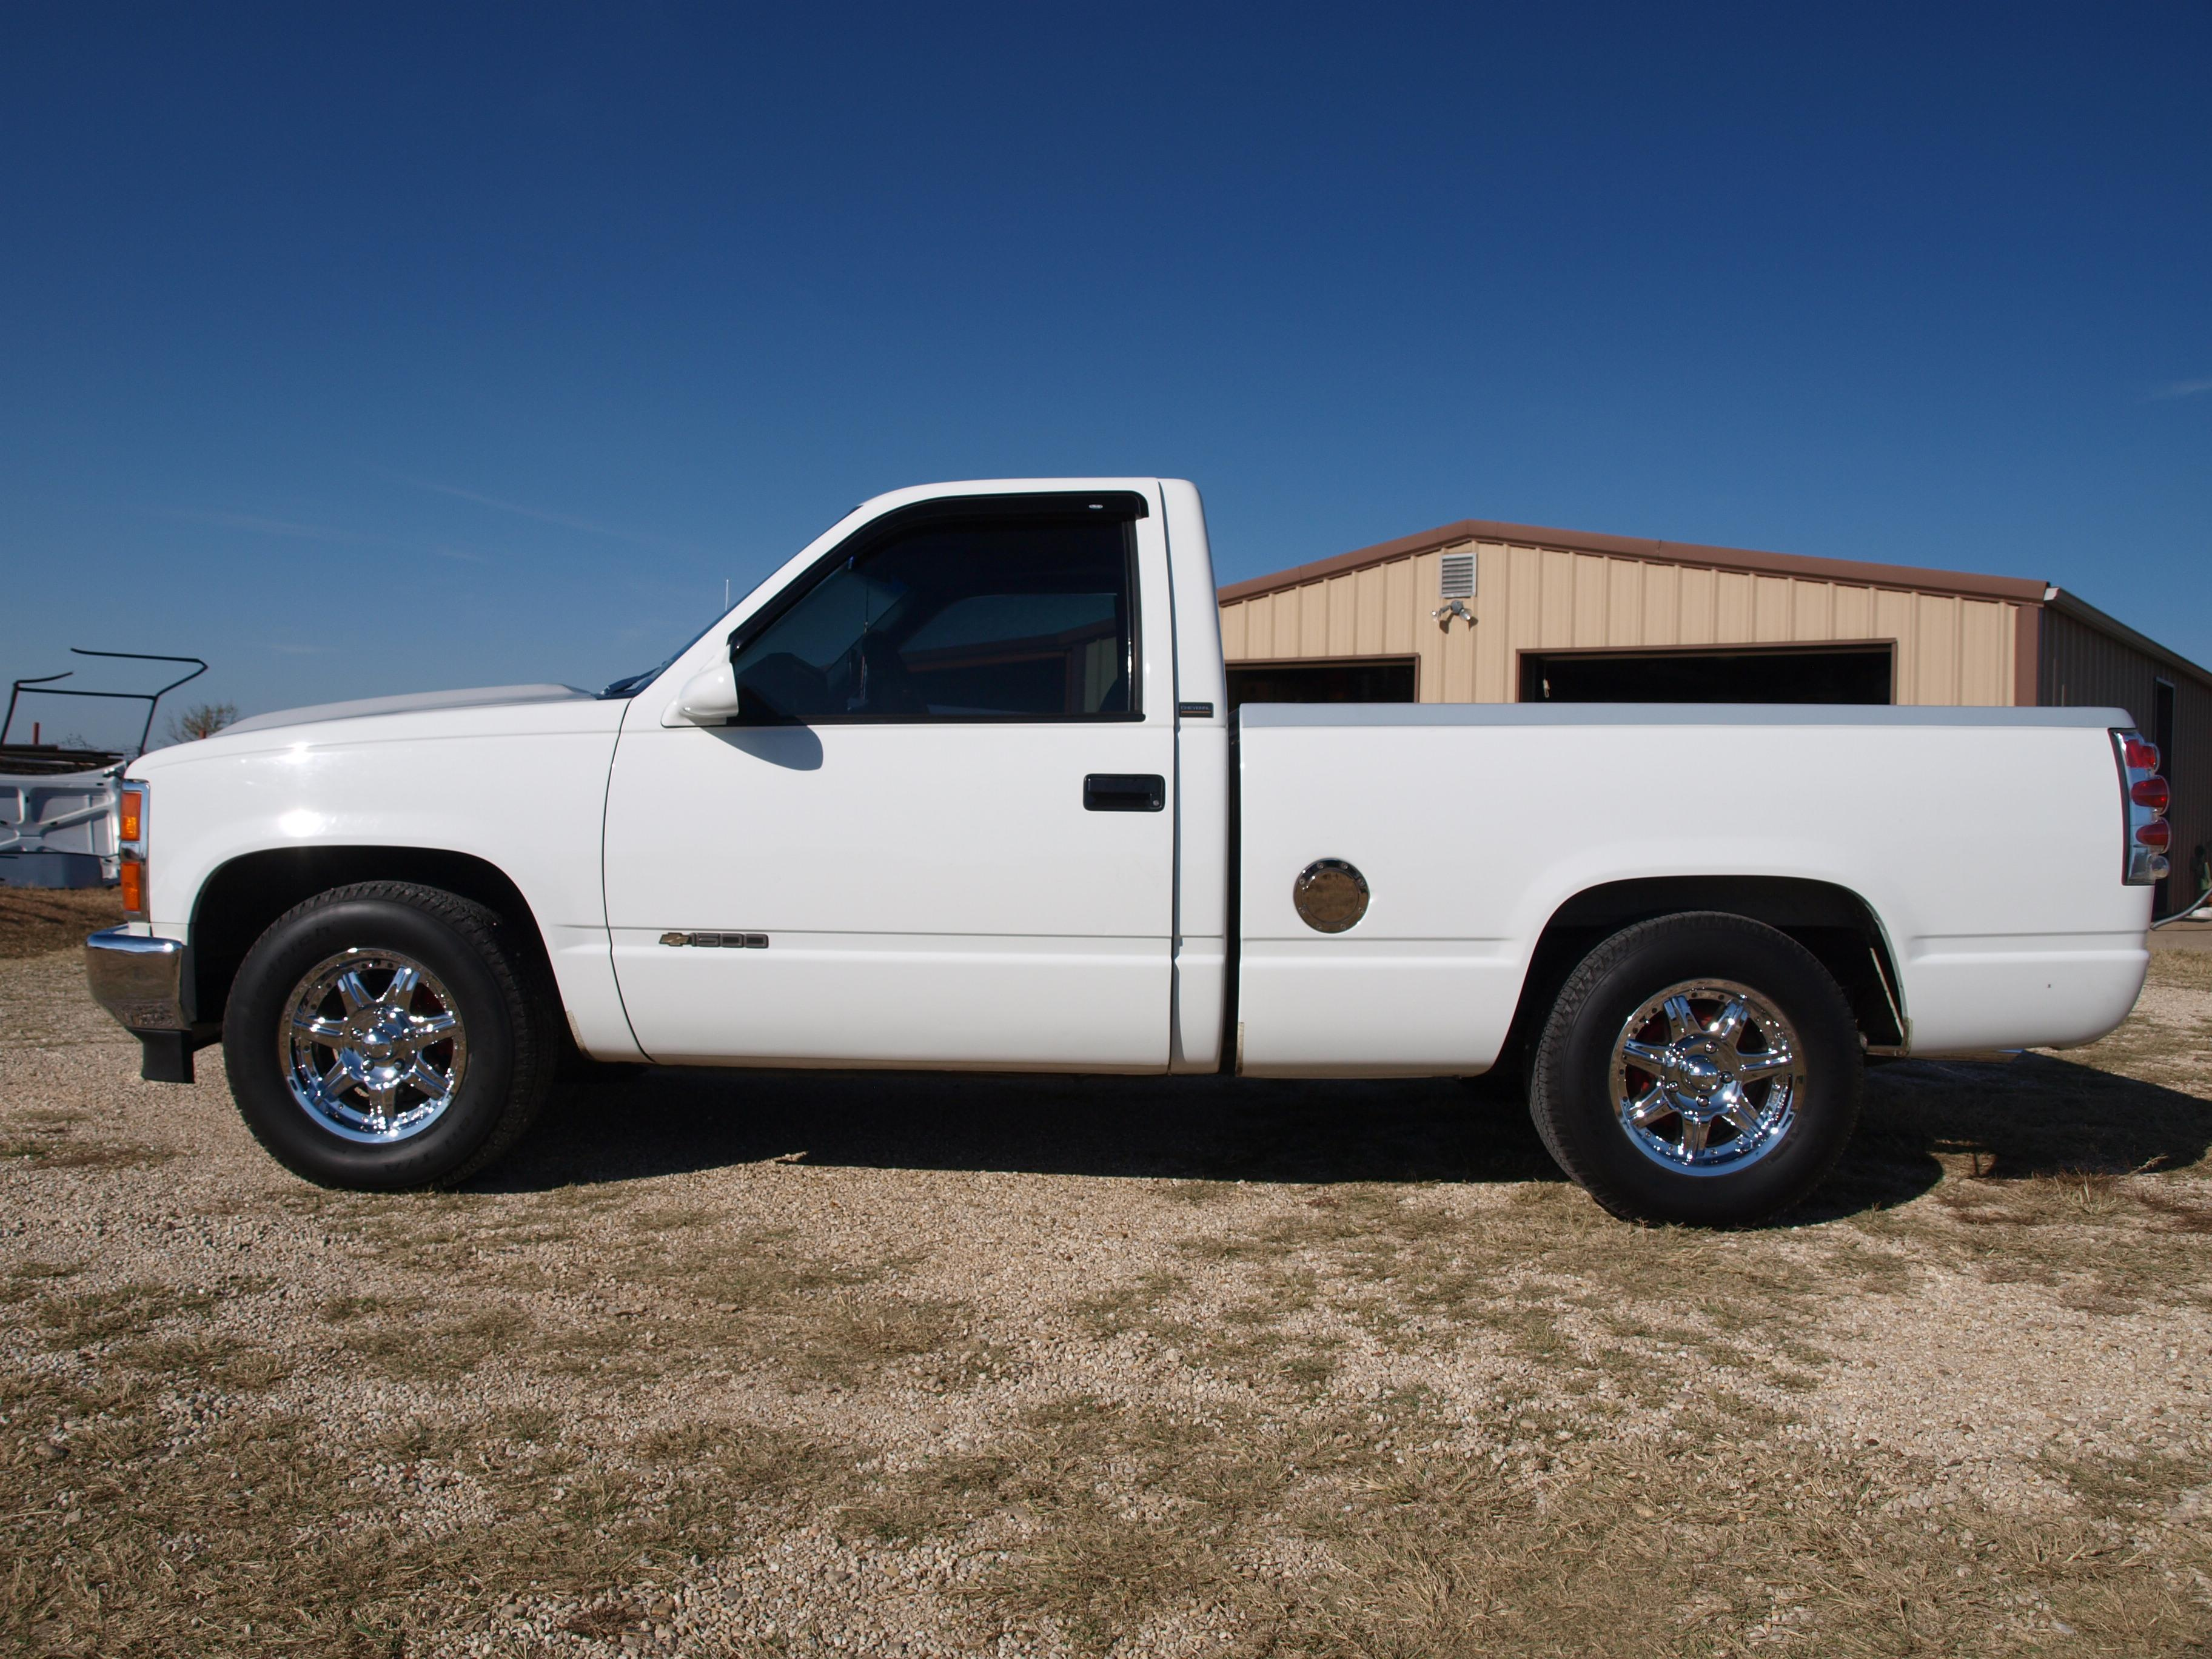 jowers10 1993 Chevrolet 1500 Regular Cab